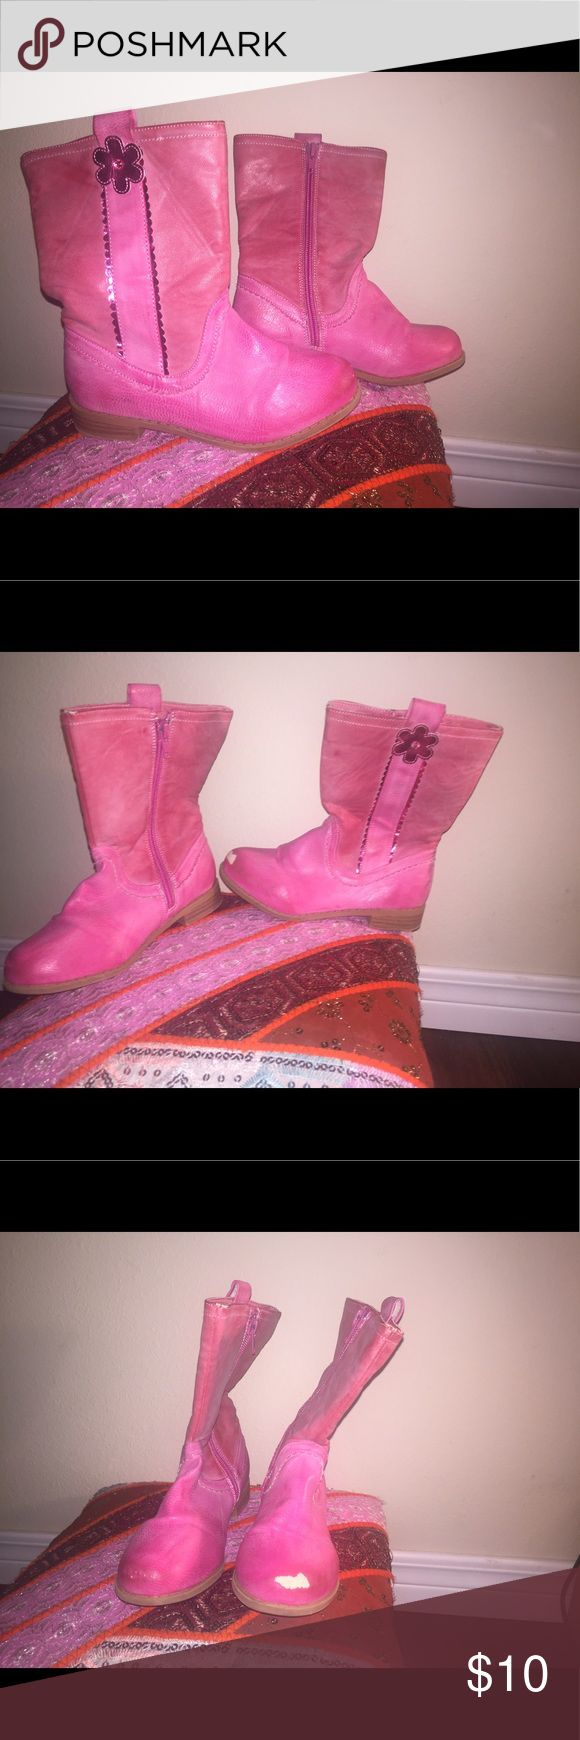 Kids cowboy boots Pink kids cowboy boots with flower on the top Size 13 small stuff on toe Shoes Boots